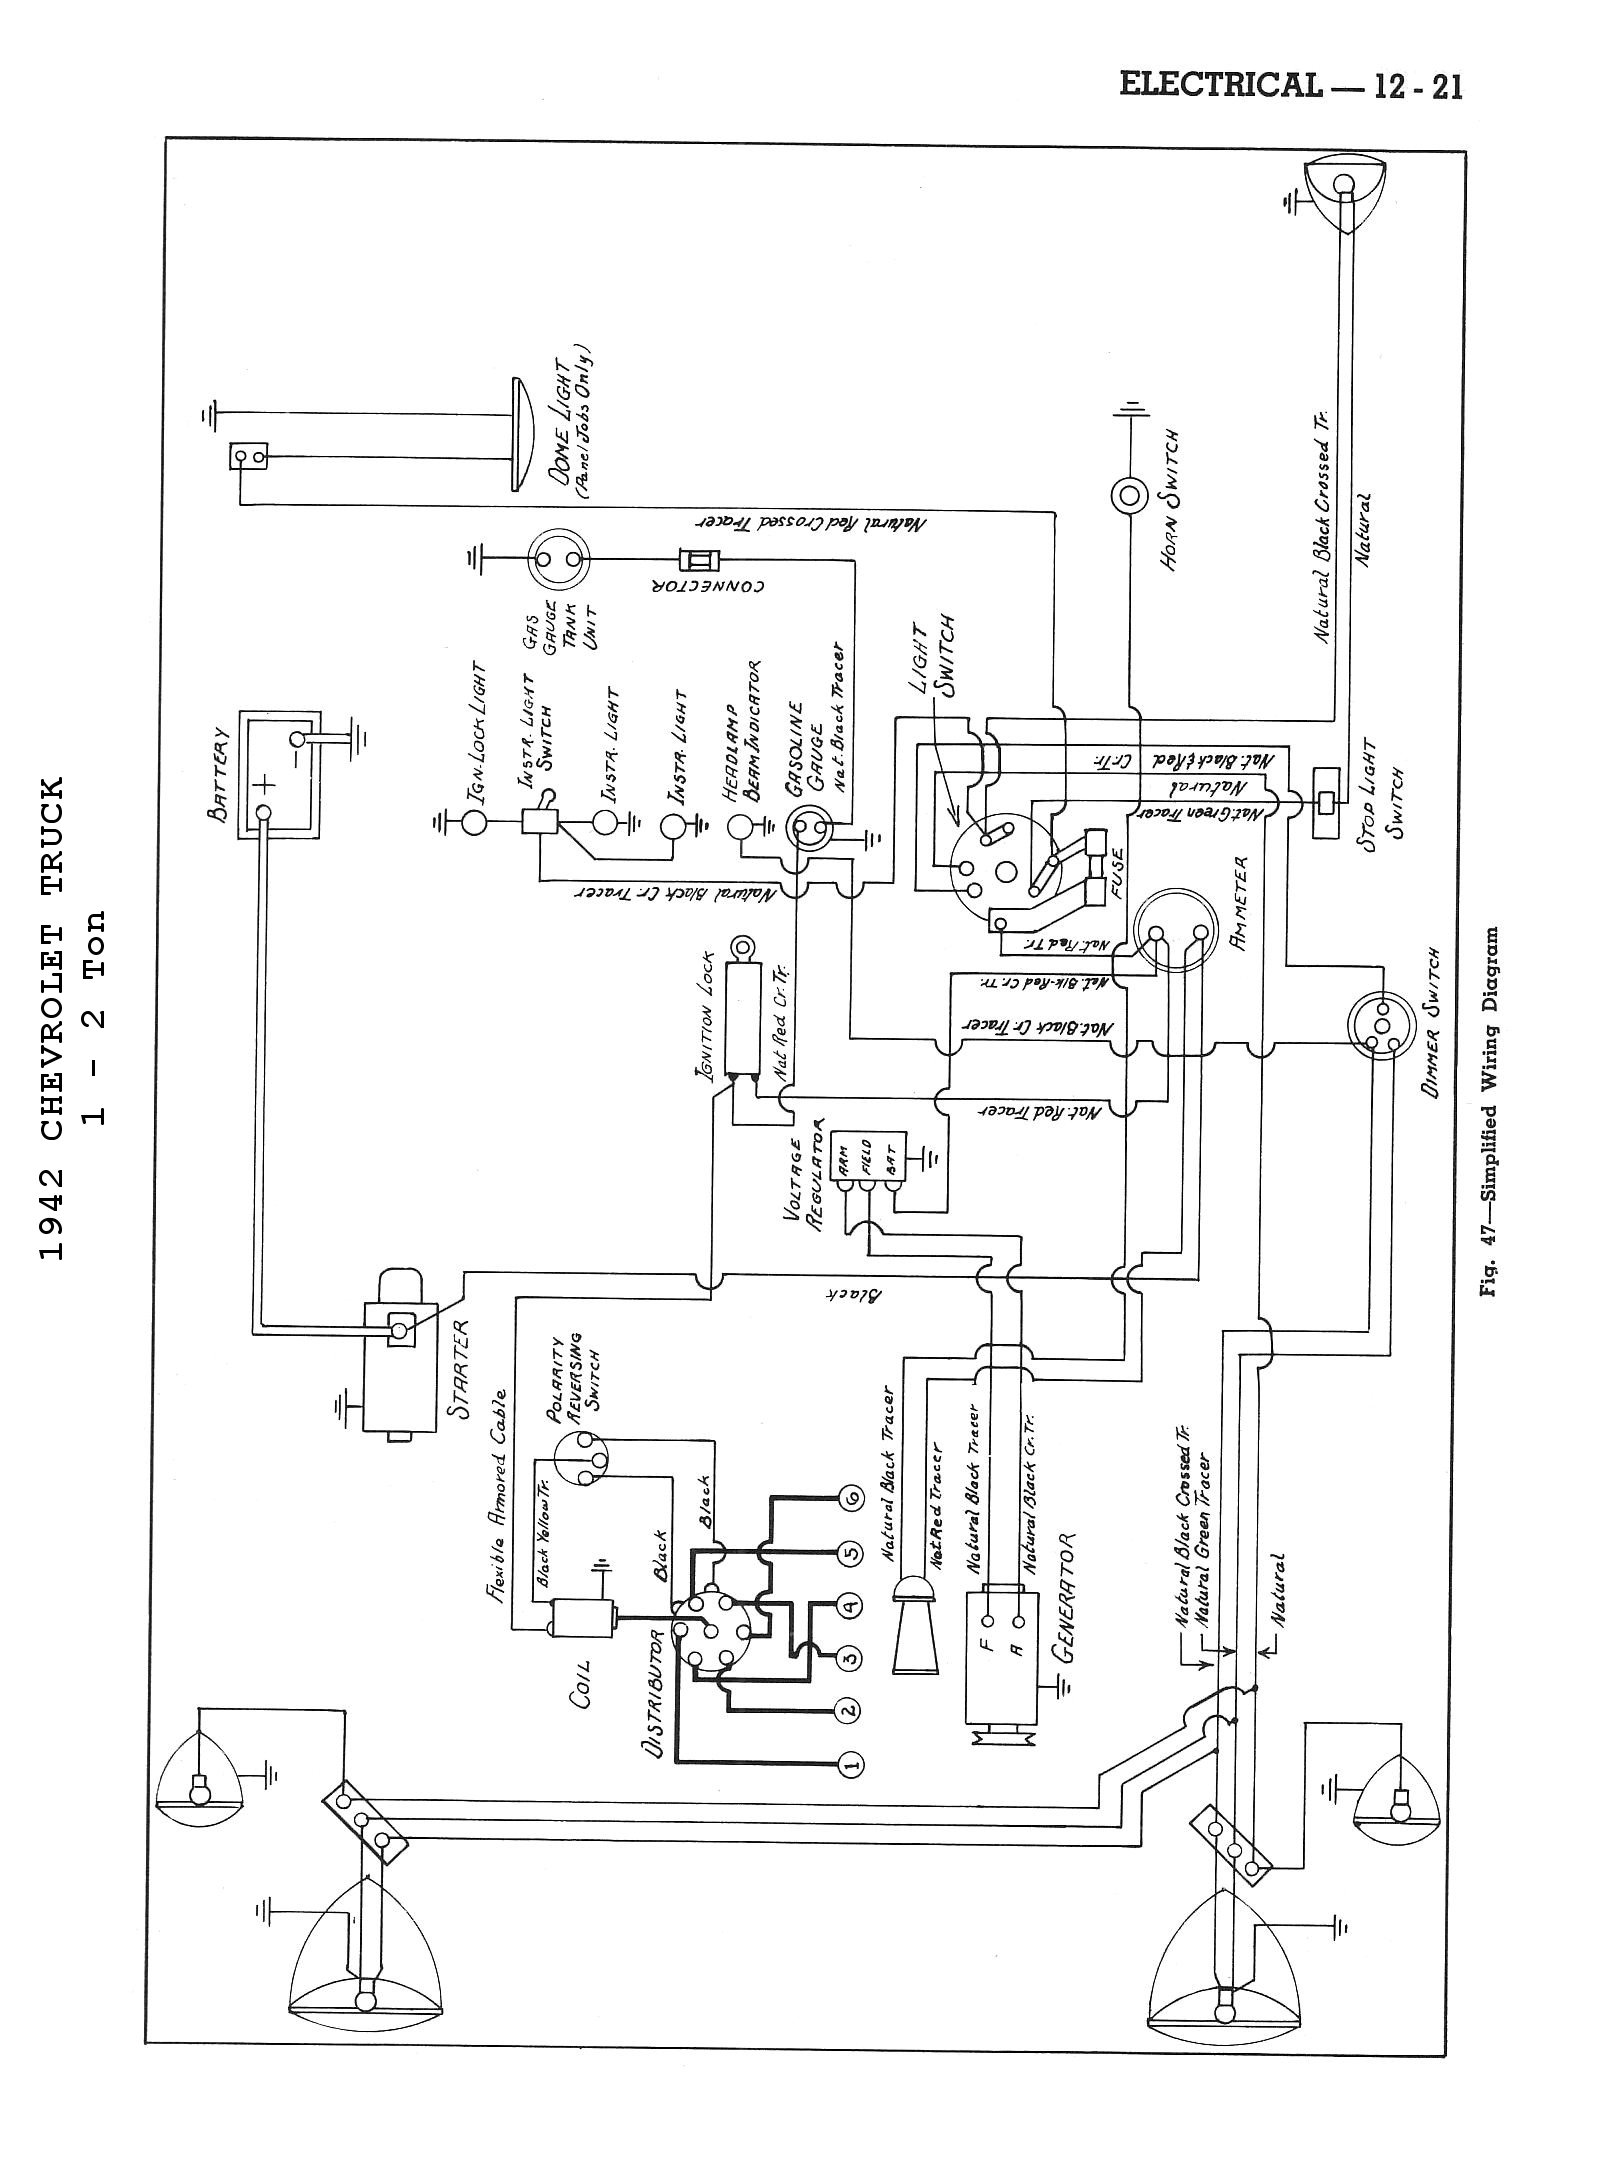 41 Ford Wiring Diagram Diagrams Schematic 78 F 250 Color Code Chevy Diesel Tractor 1942 Body 4x2 Truck